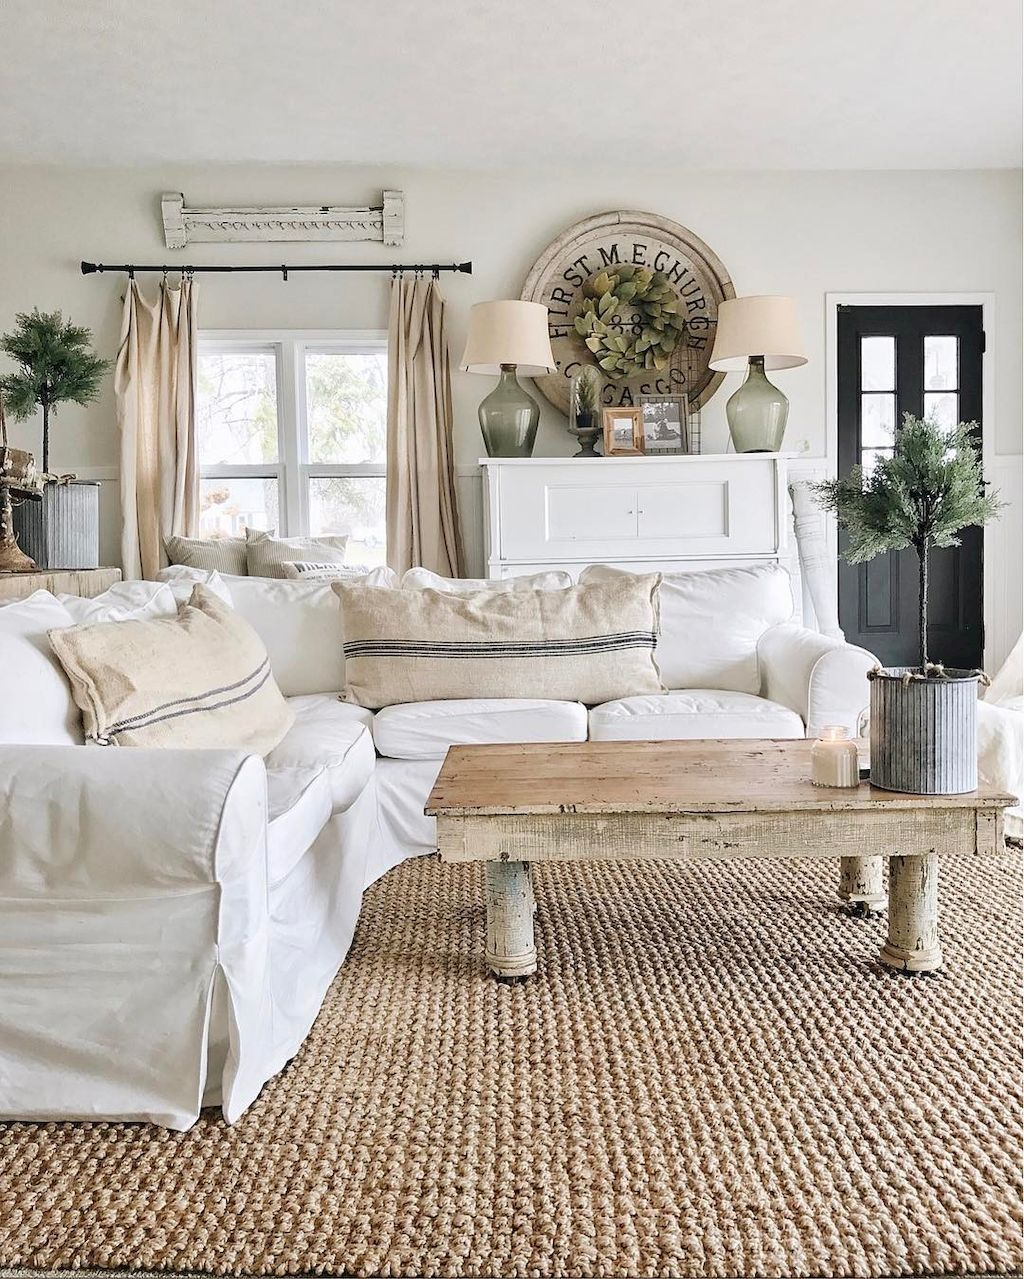 Inexpensive Cottage Style Living Room Furniture From Ikea: Lasting Farmhouse Living Room Furniture And Decor Ideas (8